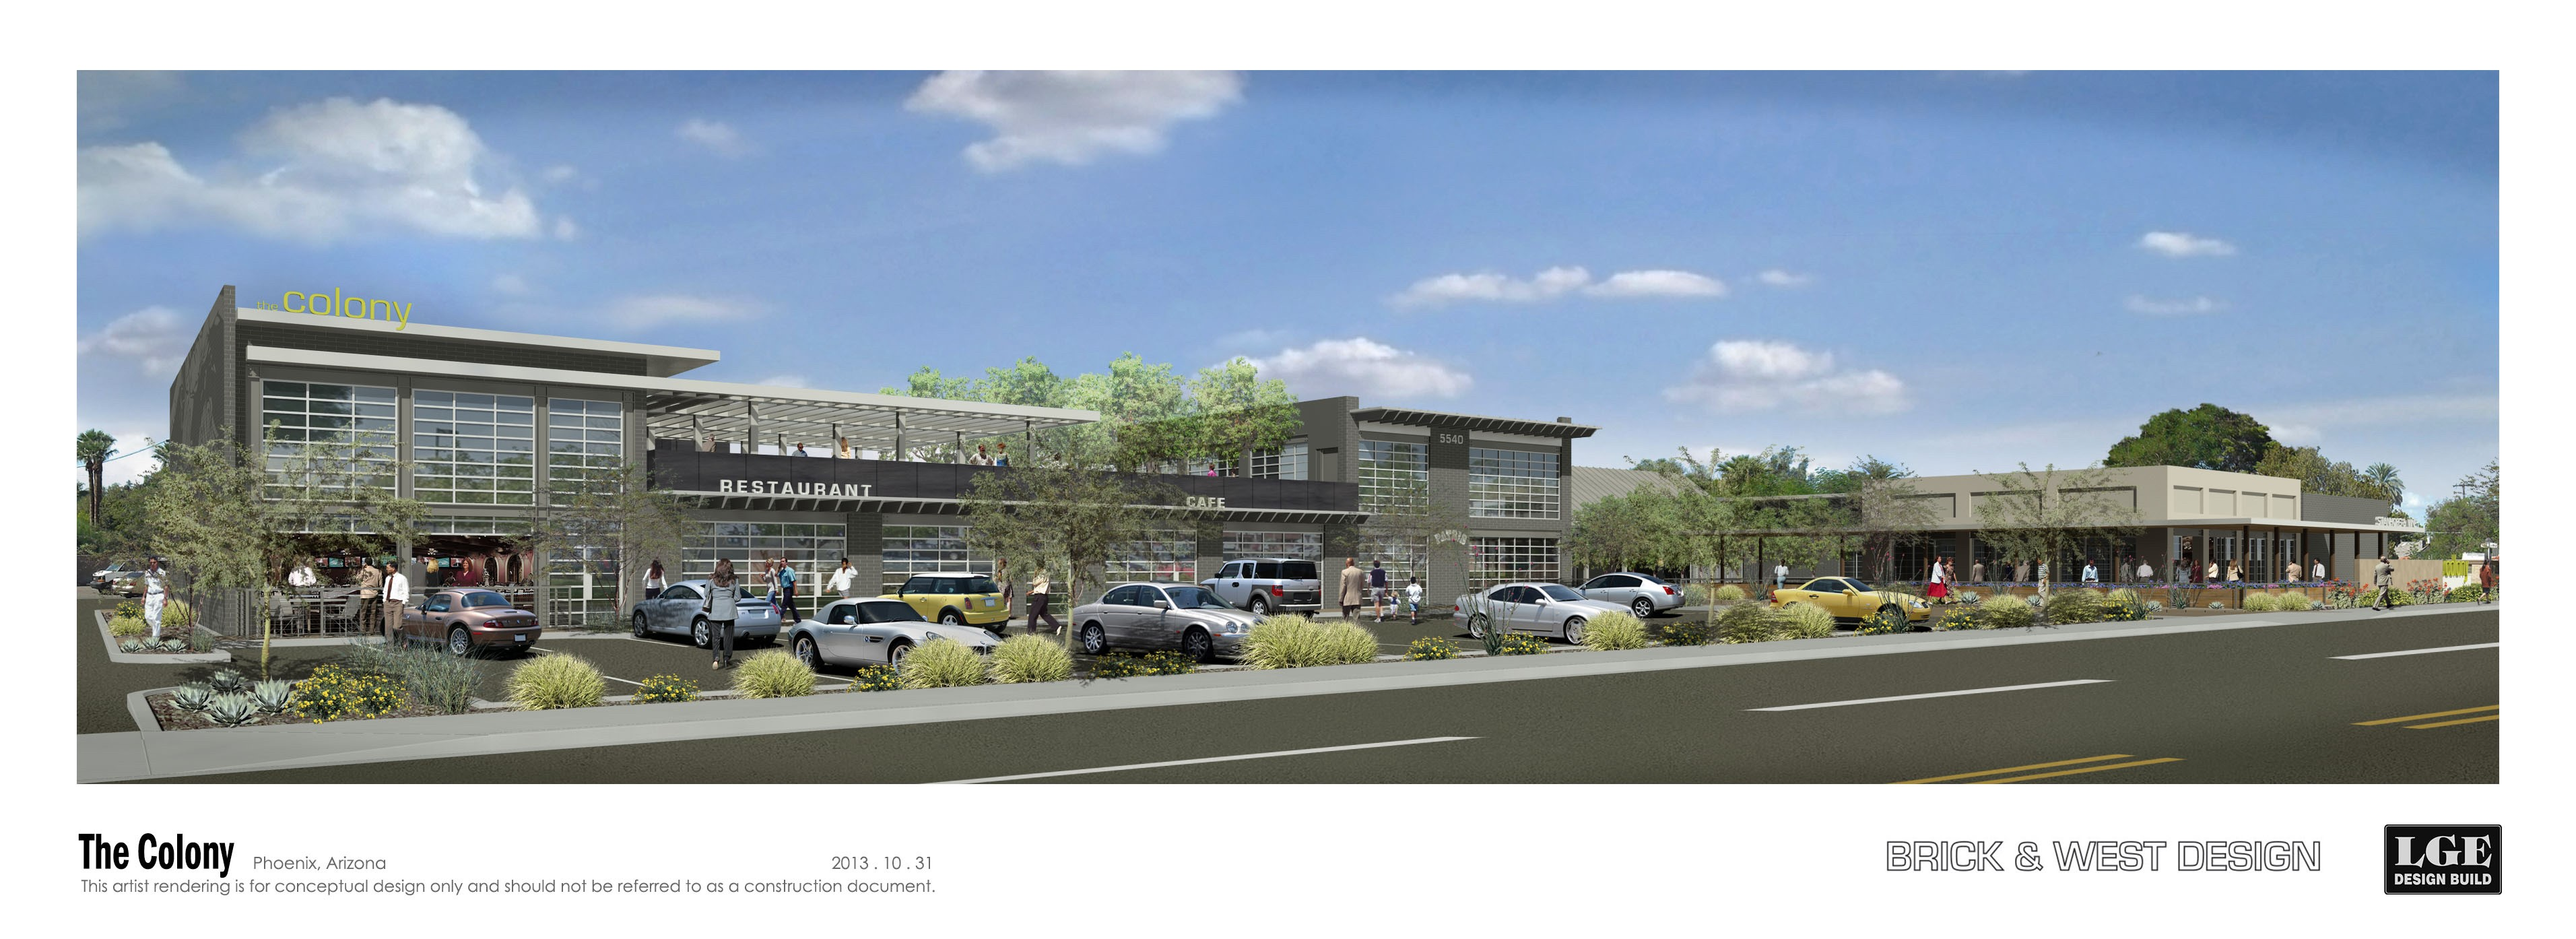 A rendering of The Colony development in Phoenix.